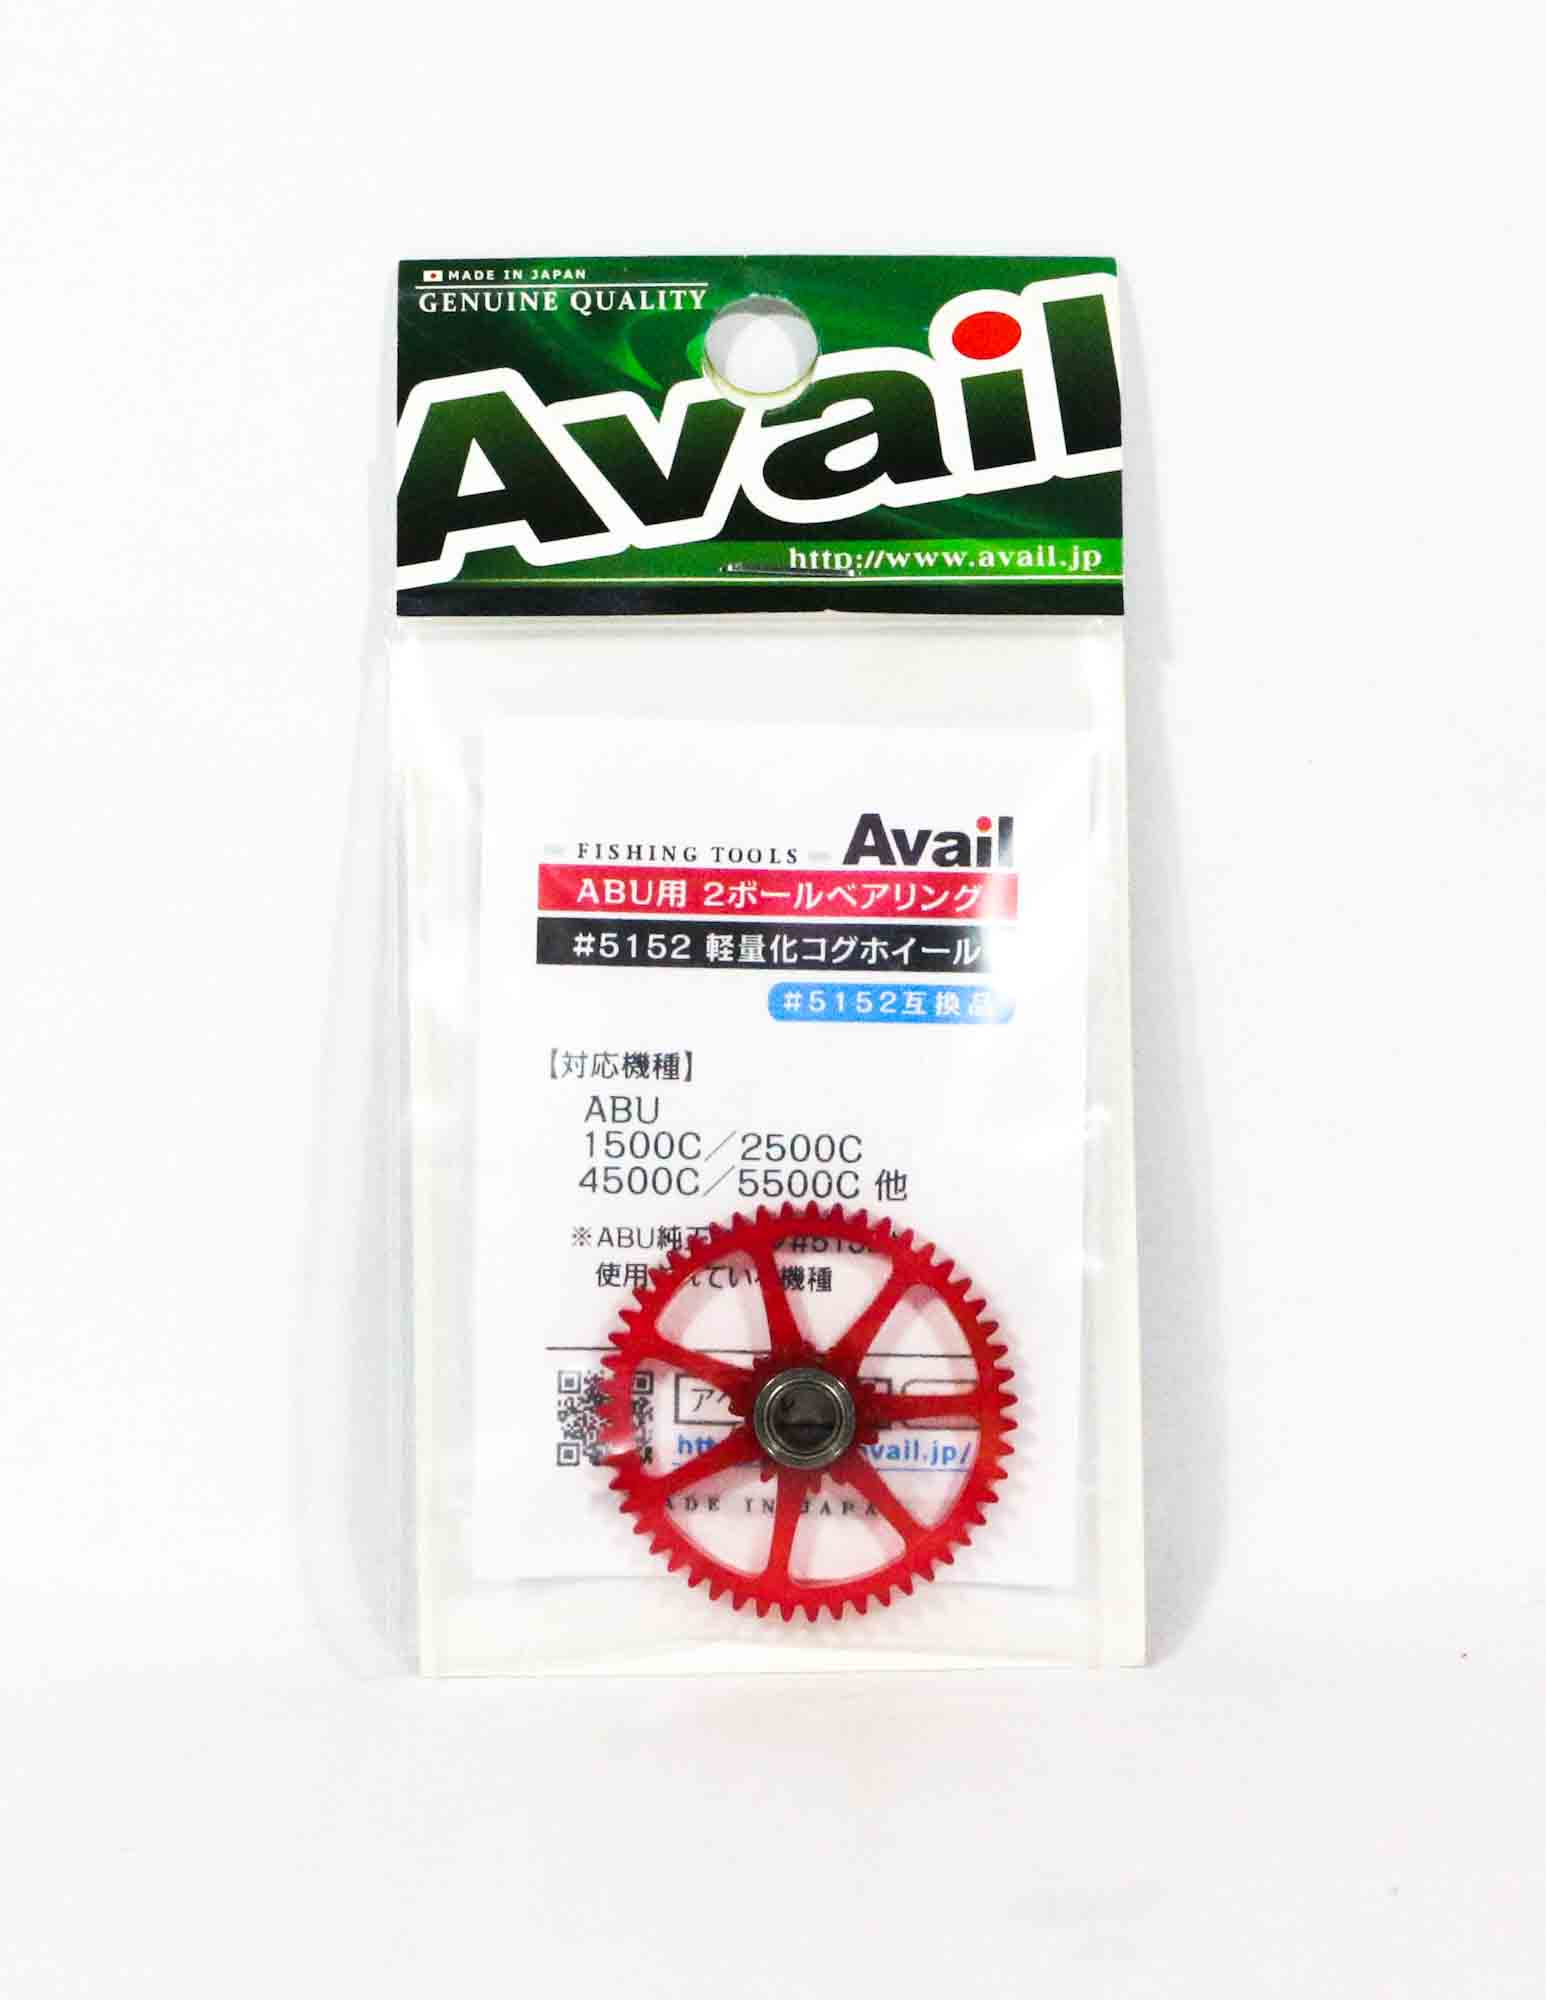 Avail Parts Abu 2500 Cogwheel 5152 Red (1408)